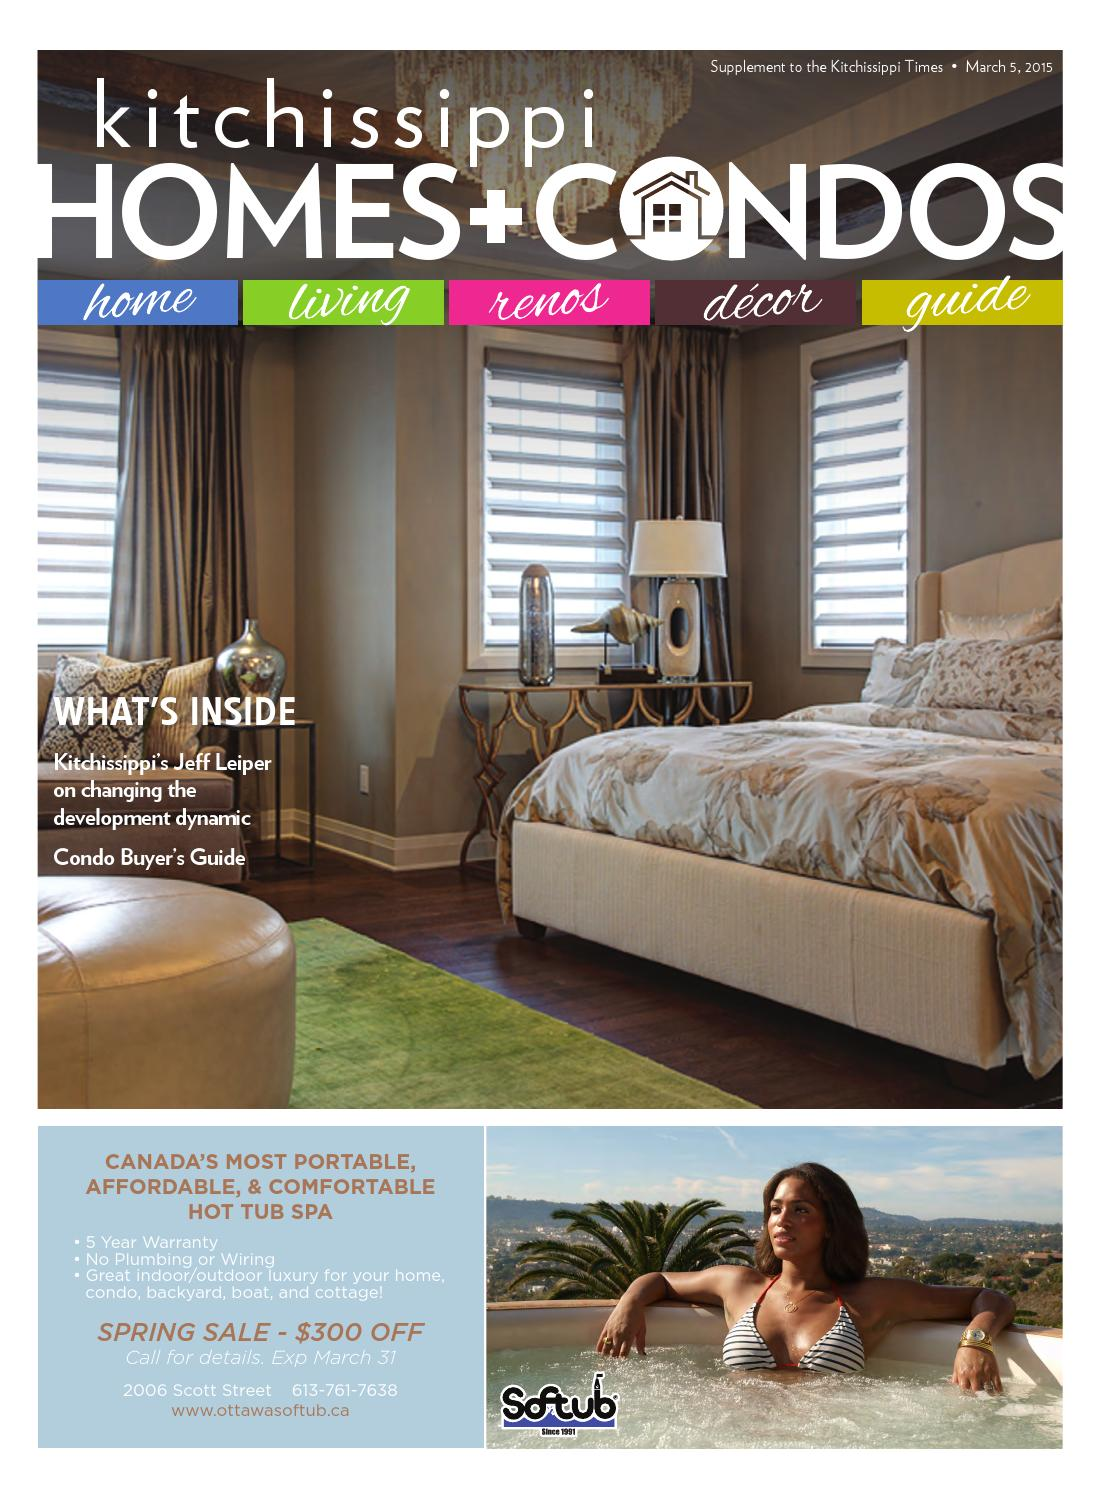 Kitchissippi Times Homes Condos By Great River Media Inc Issuu Wiring A Hot Tub Canada